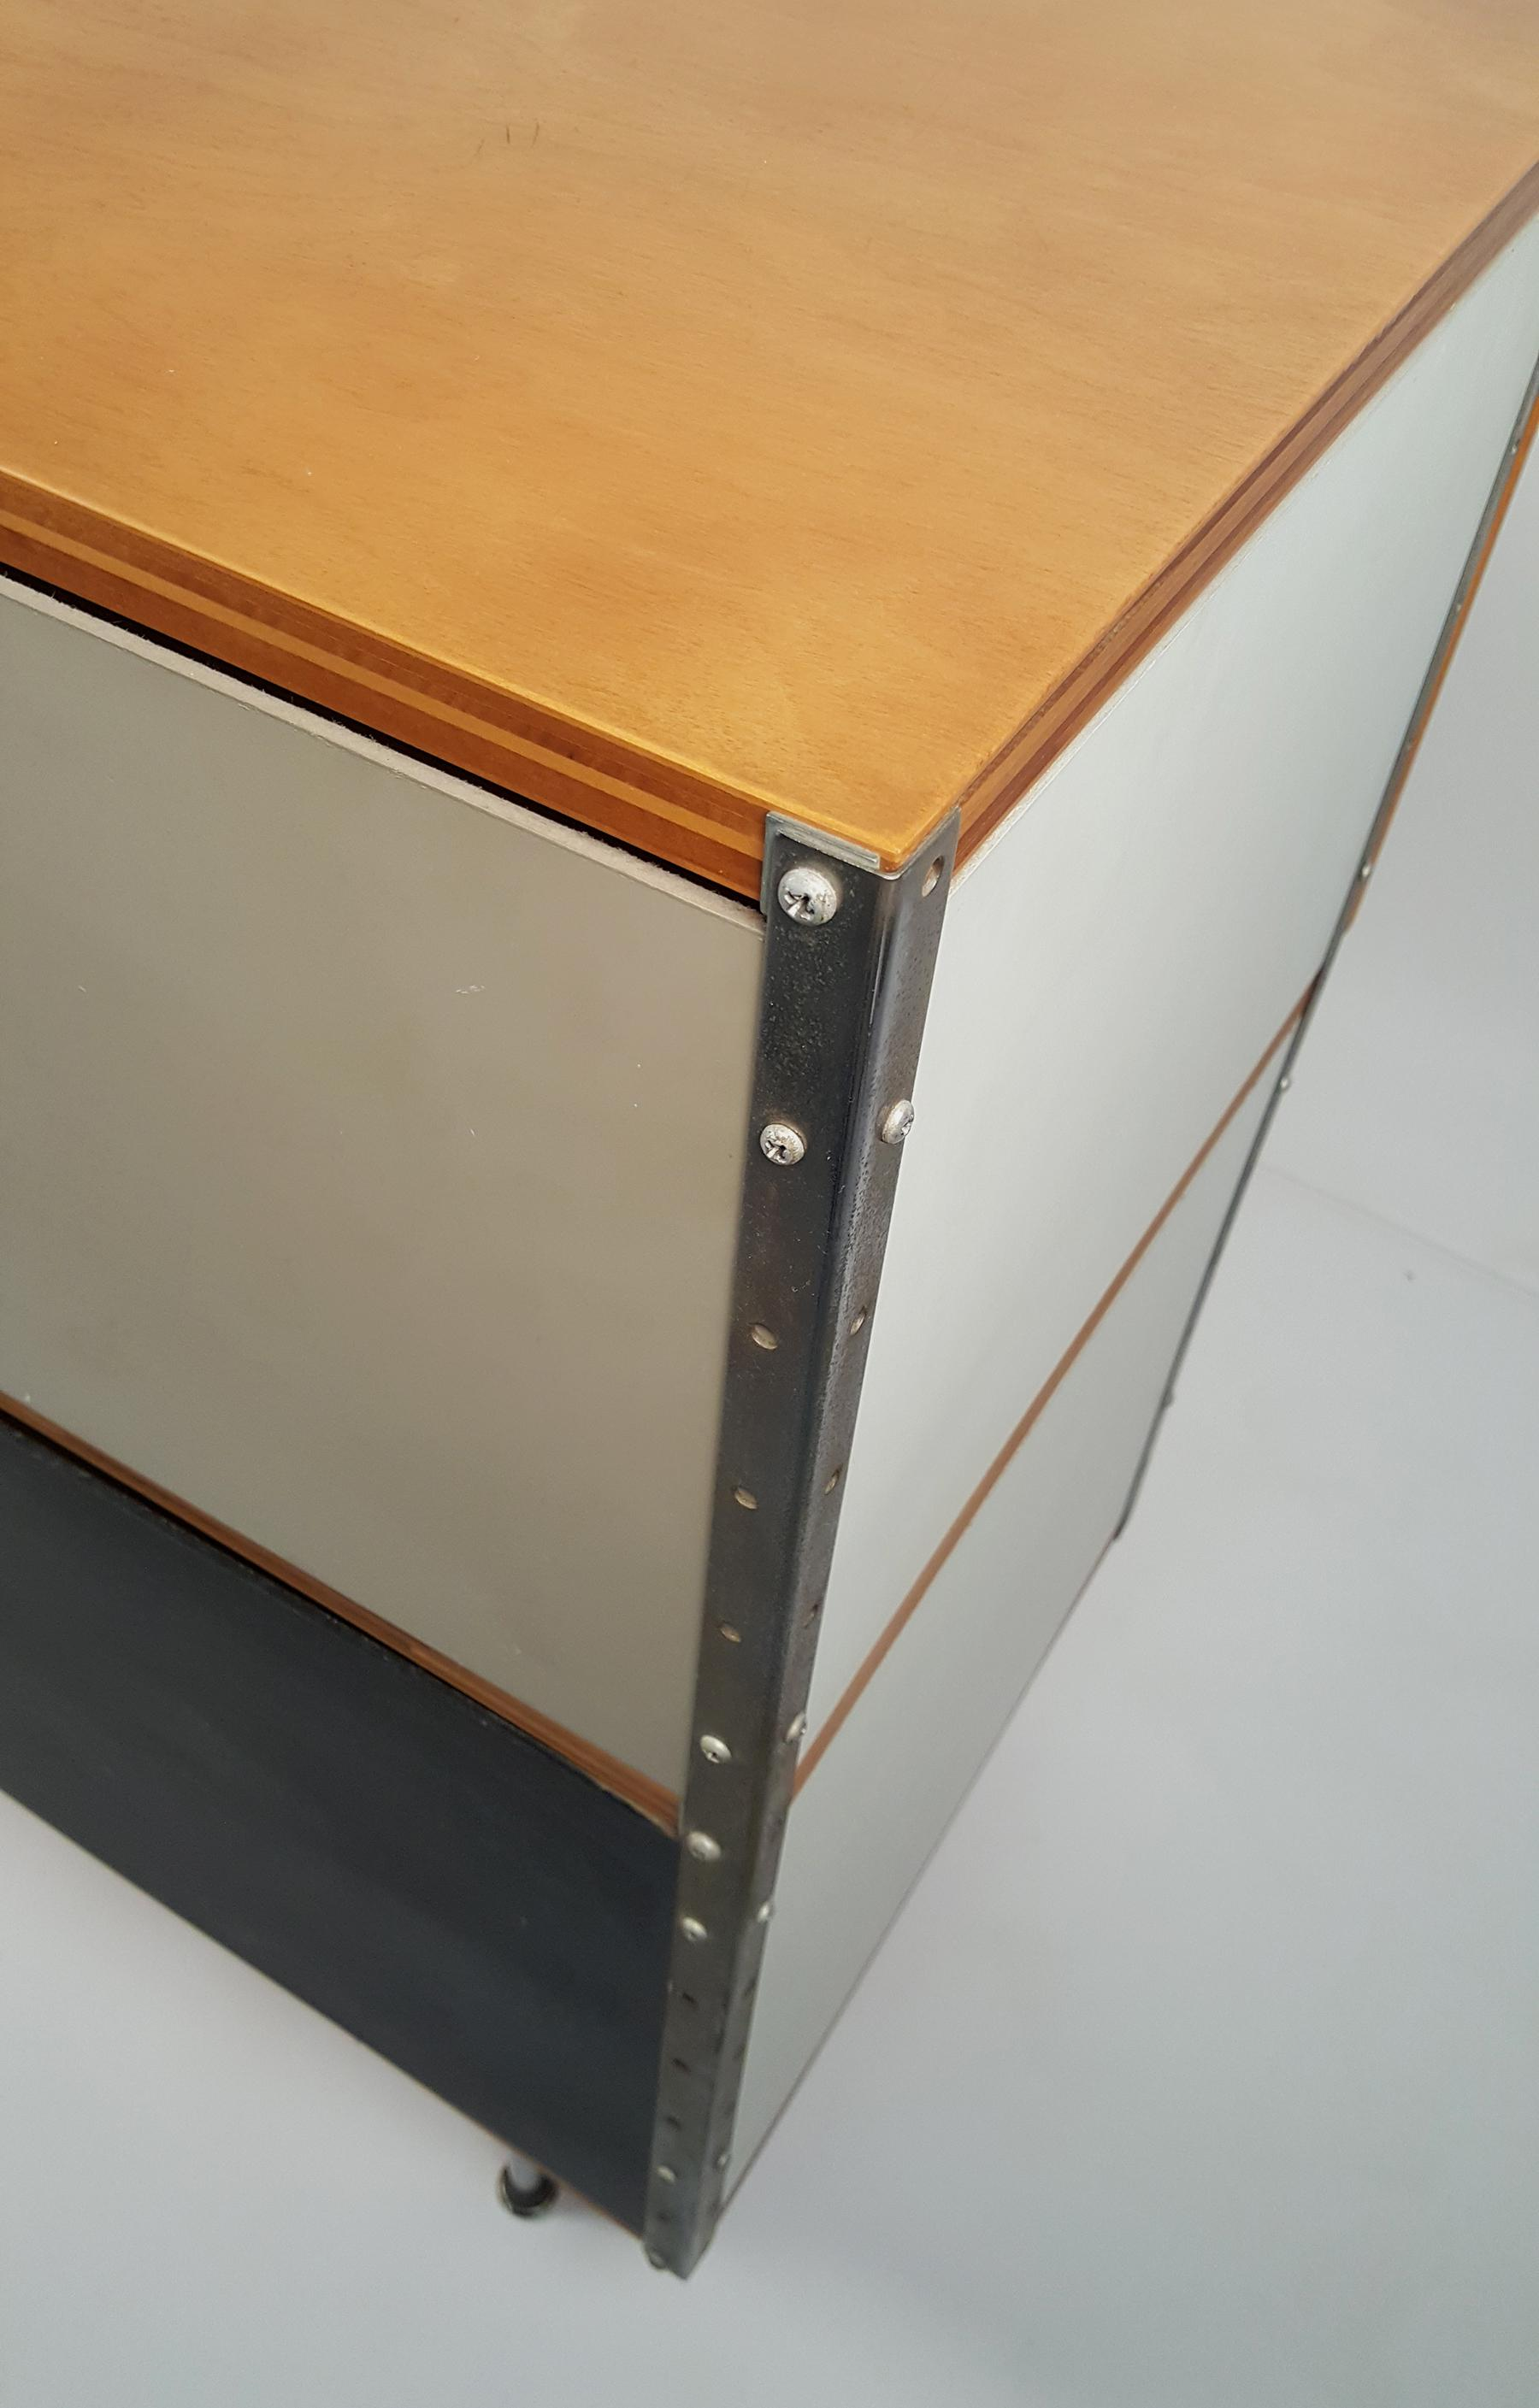 Early ESU 200 Storage Unit By Charles U0026 Ray Eames For Herman MIller   Image  10